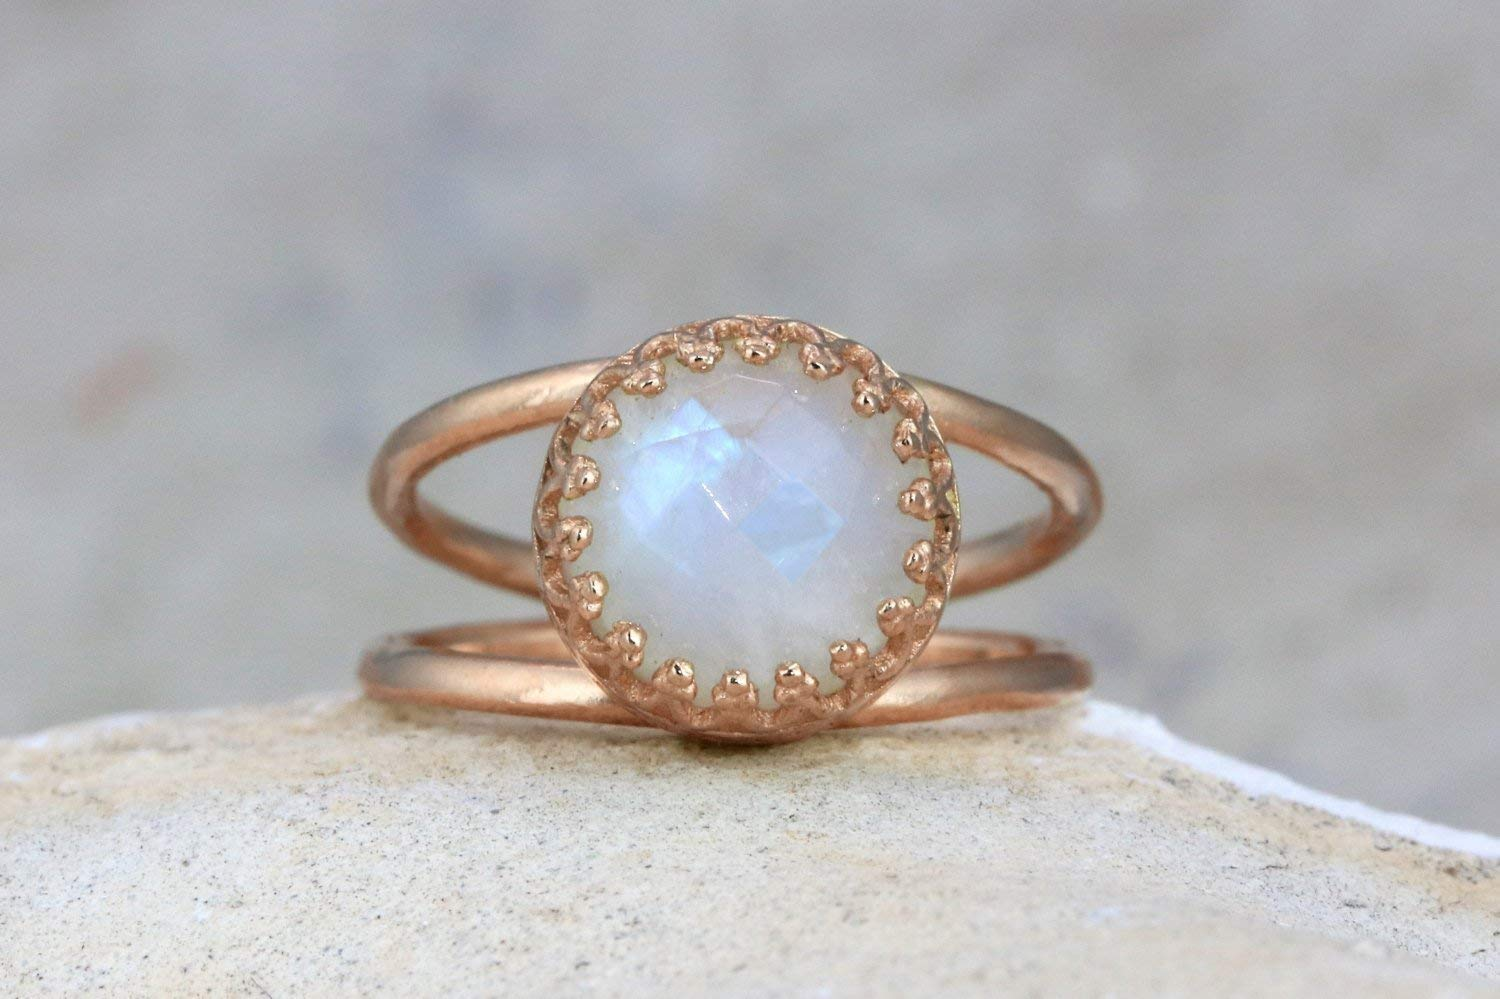 Round Shaped 14CT Moonstone Rose Gold Ring By Anemone Jewelry - 14K Gold Double Band Ring For Women Sizes 3 To 12.5 [Handmade]